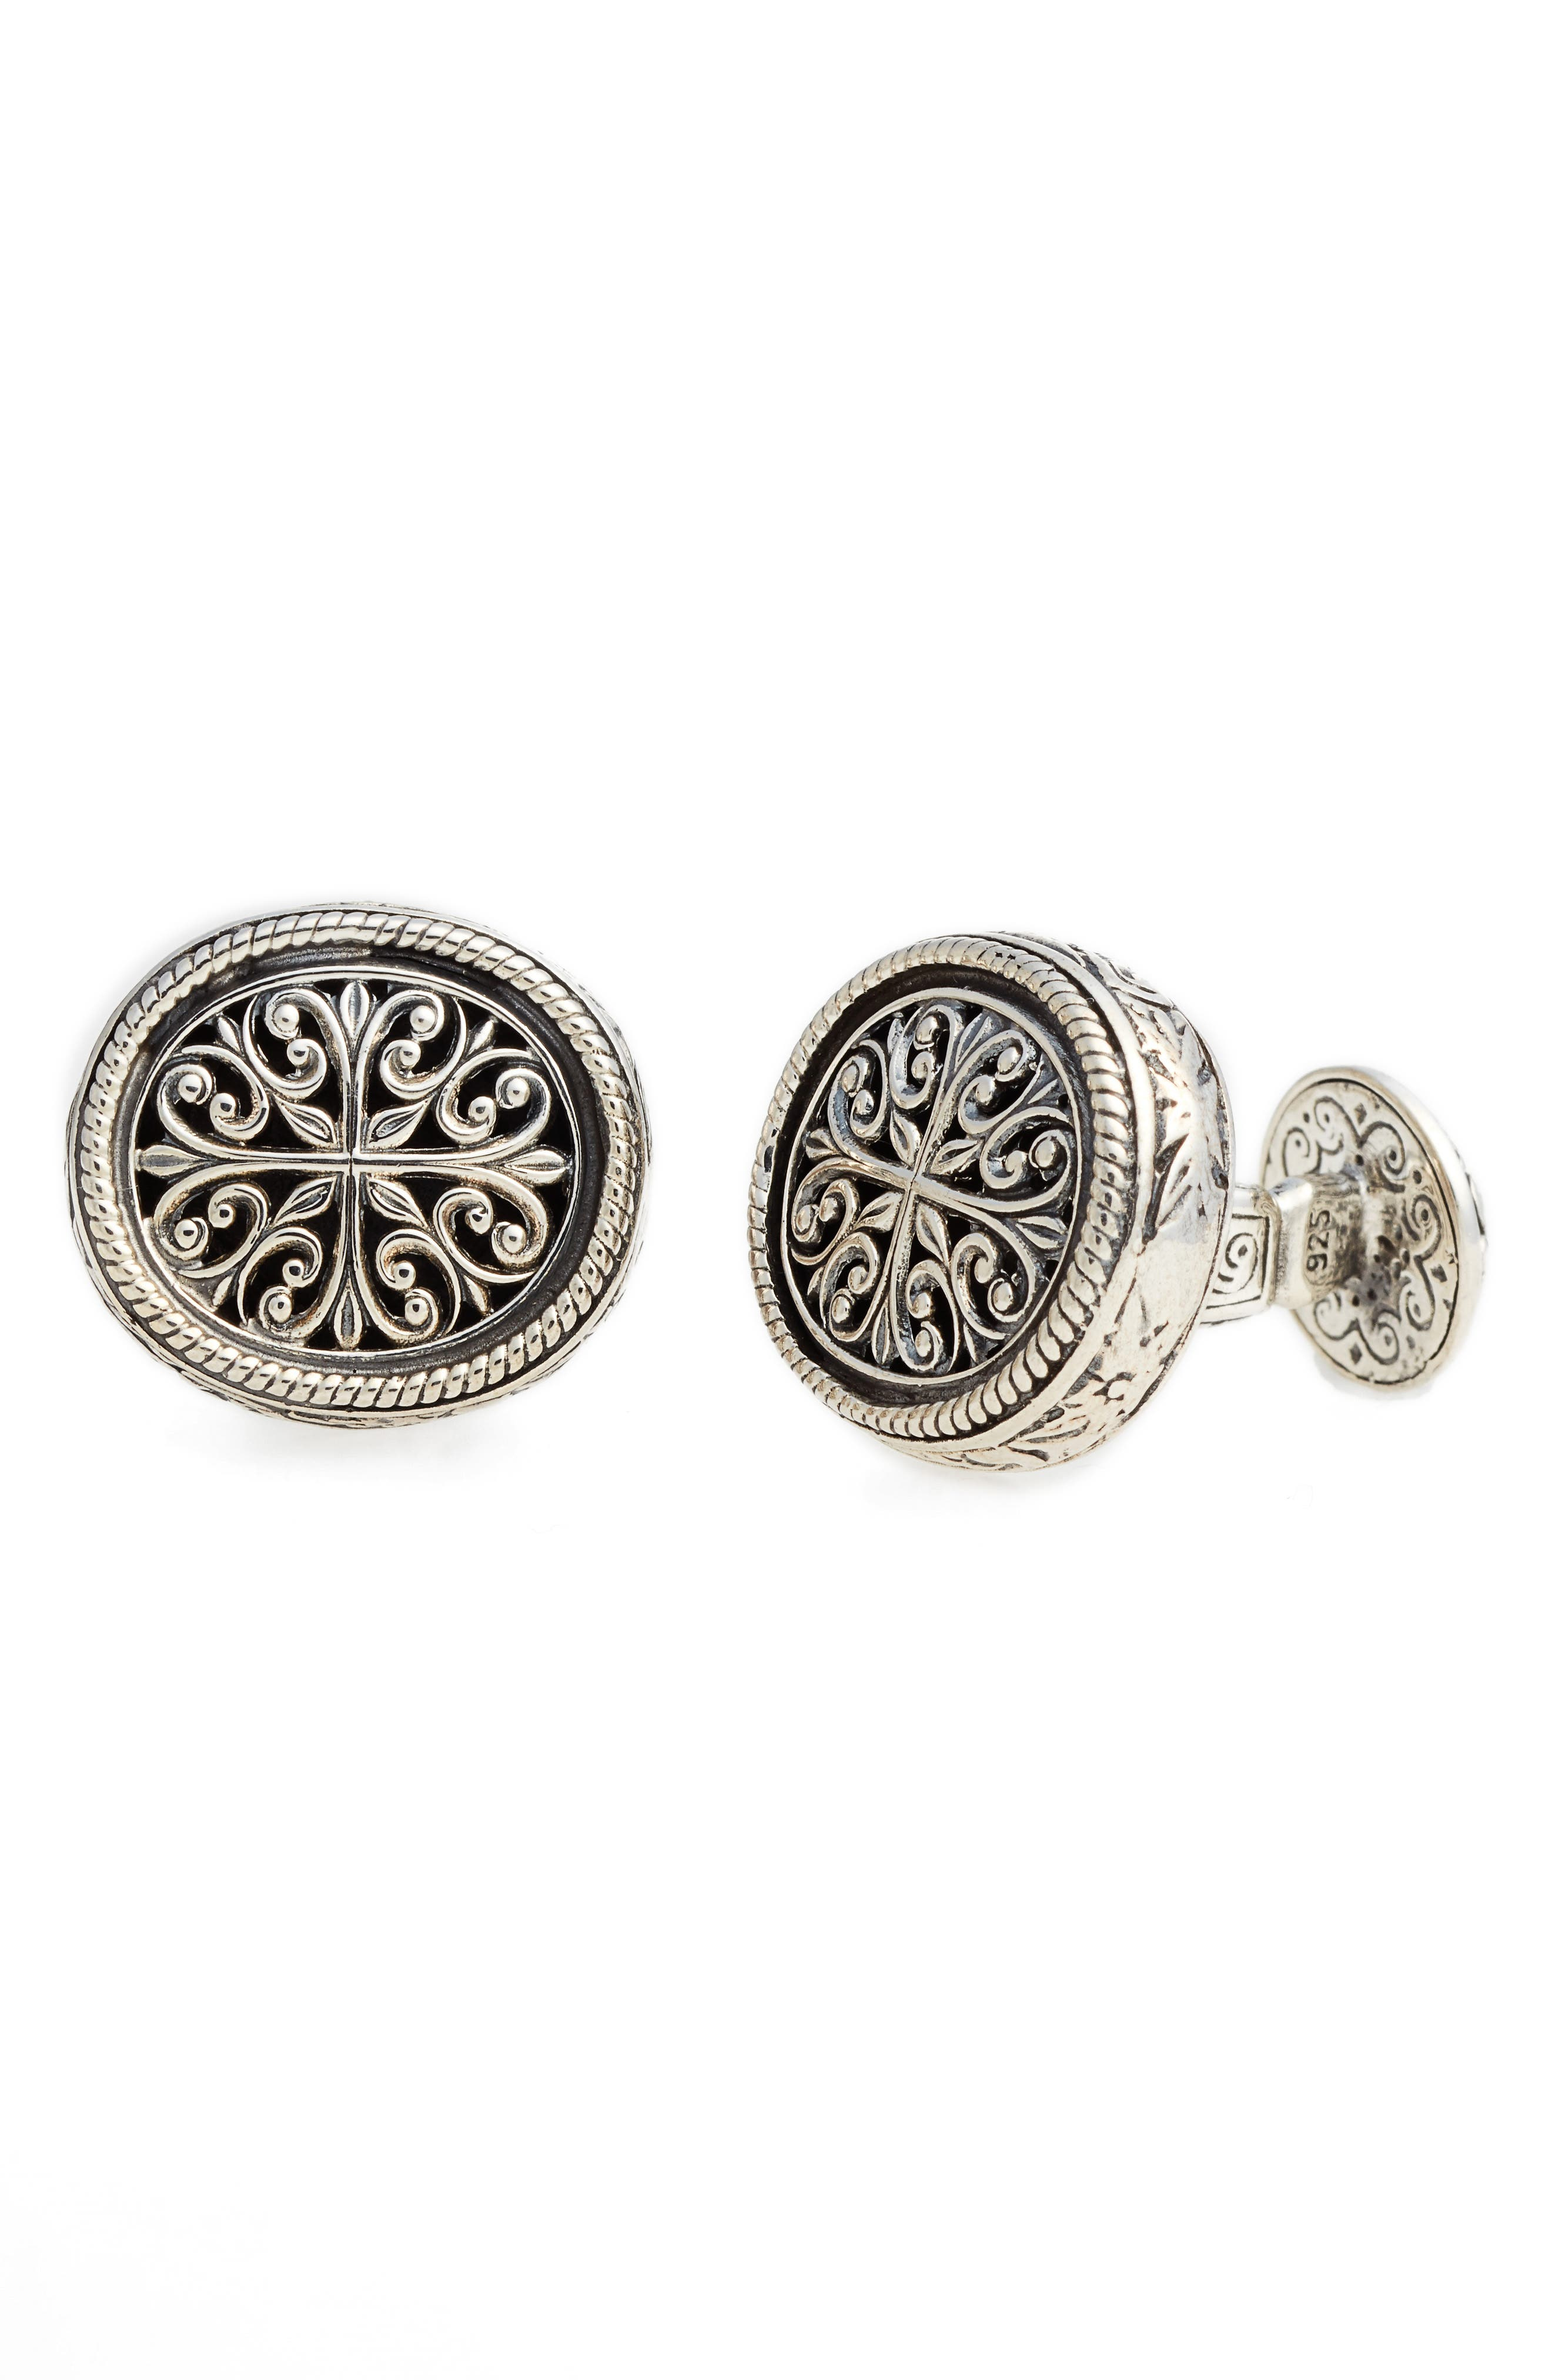 Filigree Oval Cufflinks,                             Main thumbnail 1, color,                             SILVER